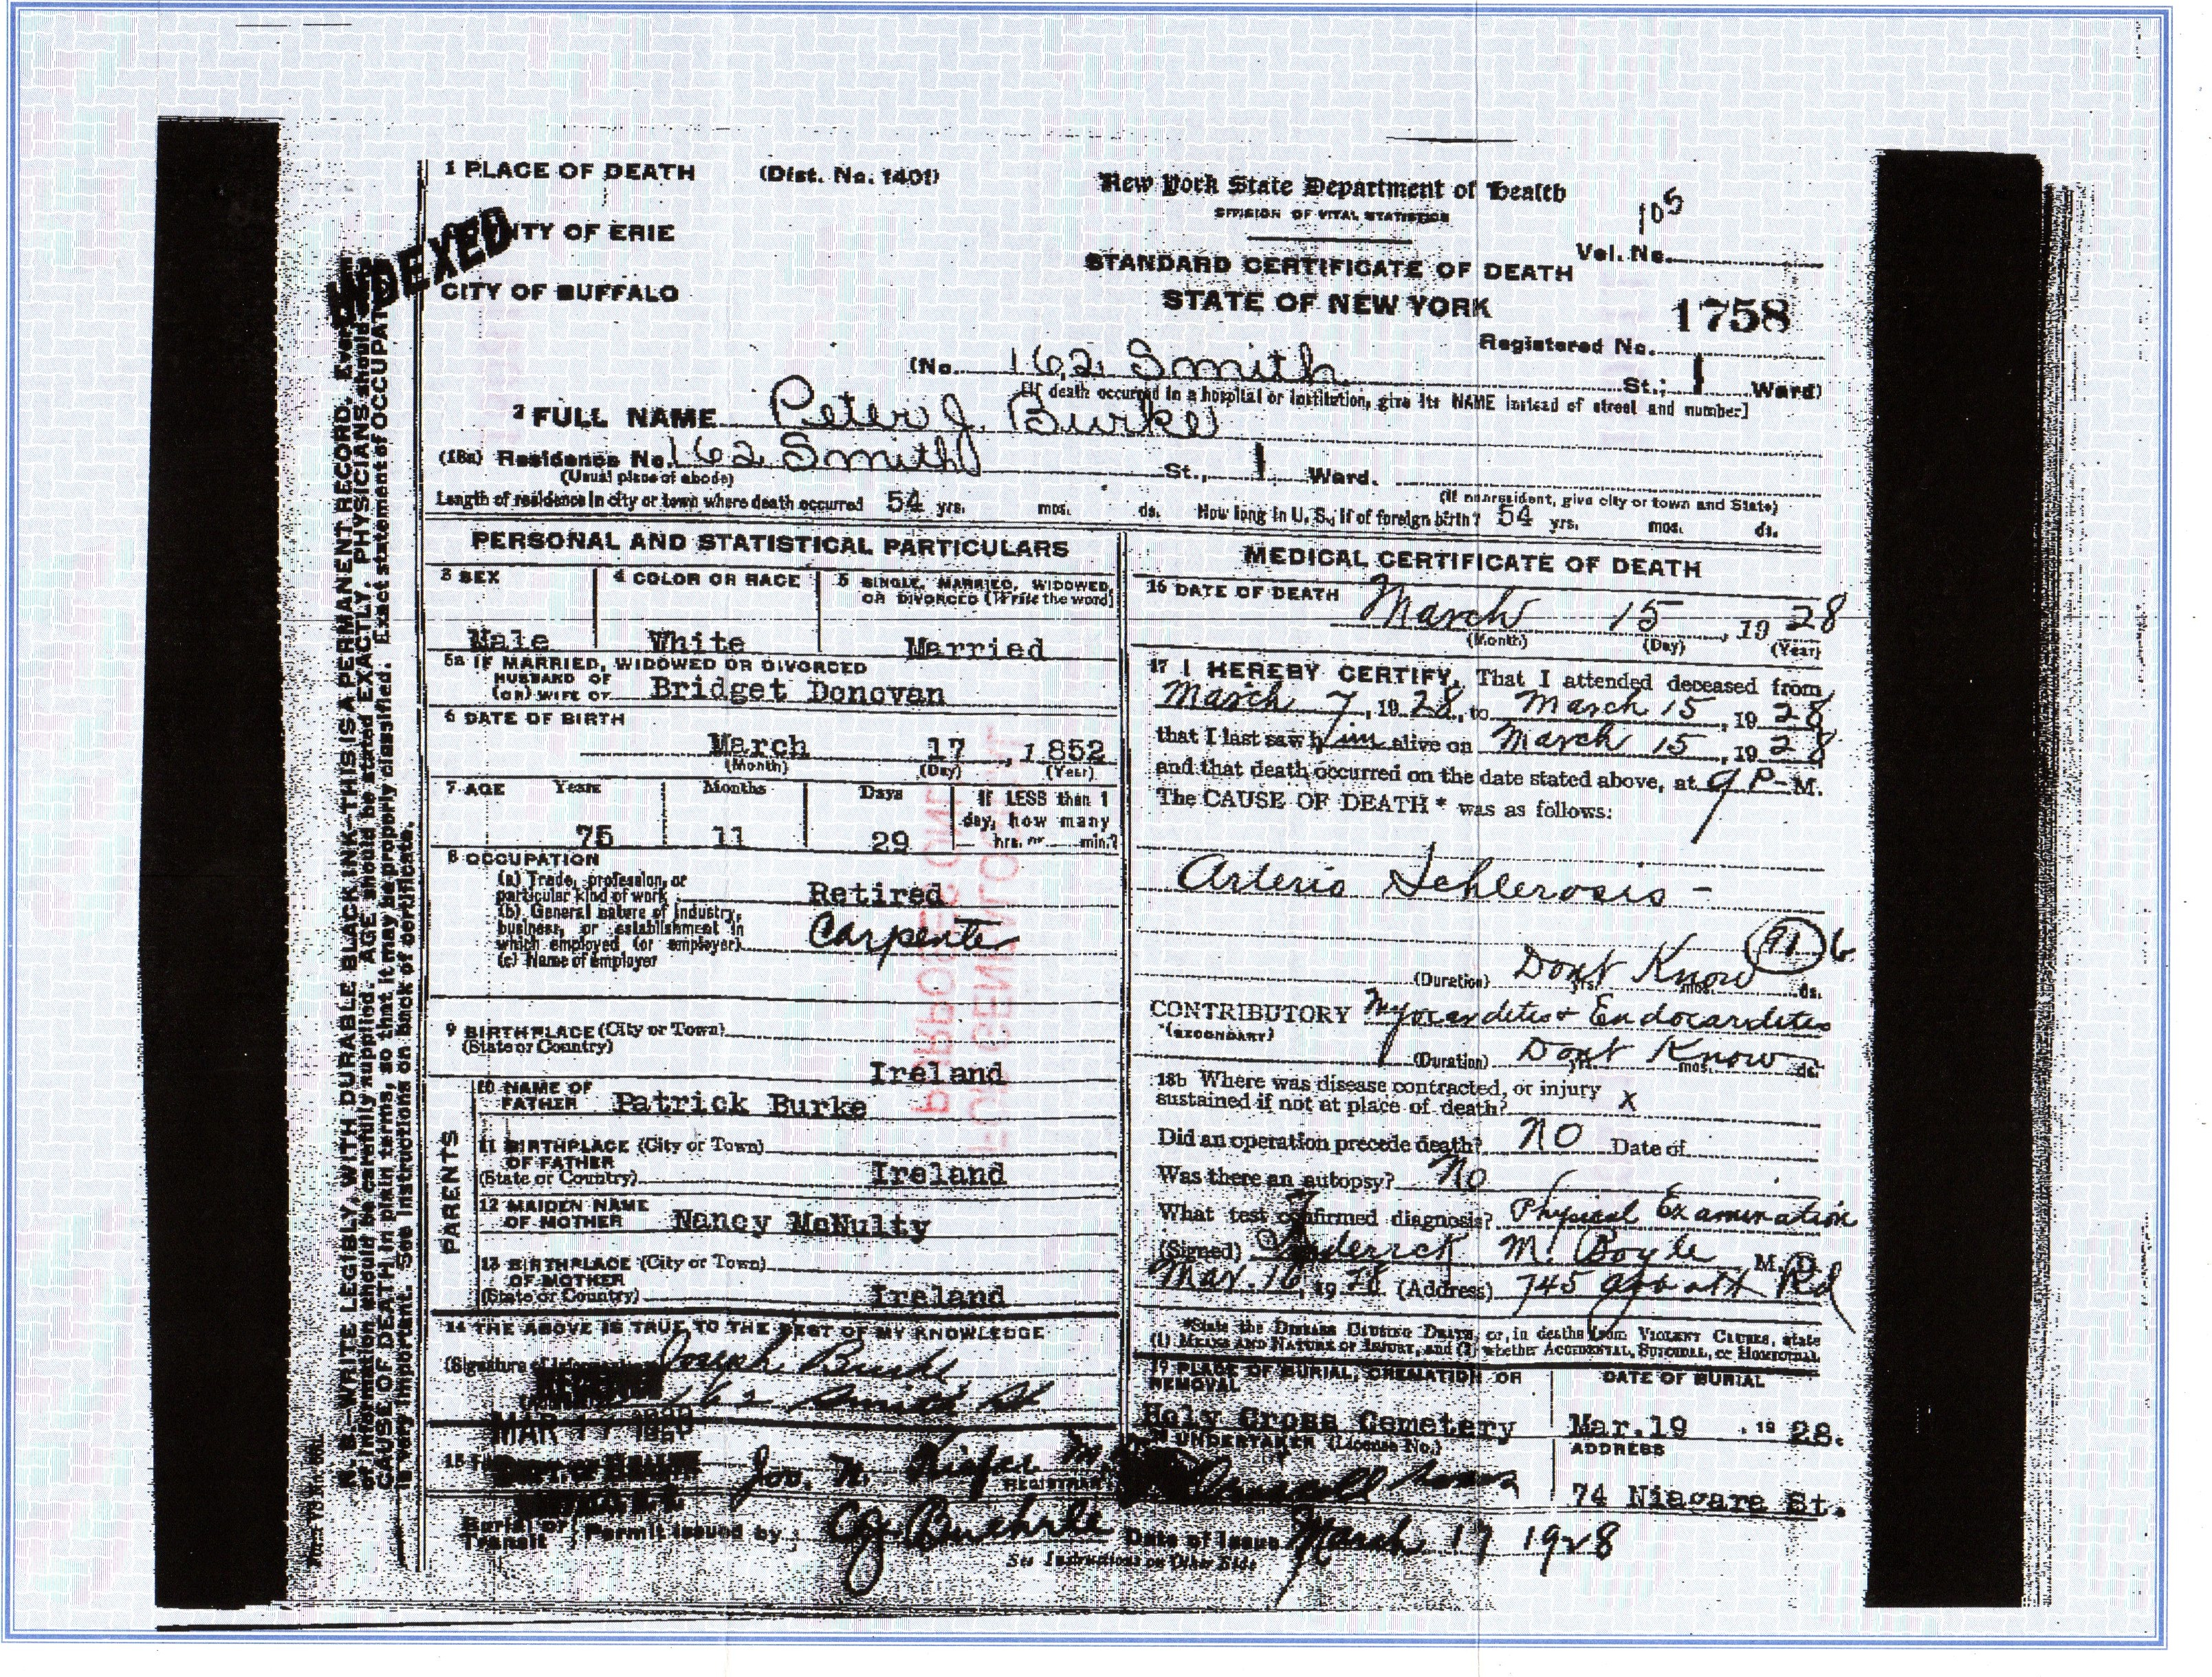 Death certificate genealogy and jure sanguinis it gives his date of birth perhaps someday ill be able to use this to find some irish records i tried a copy of online search tools but none turned up aiddatafo Image collections